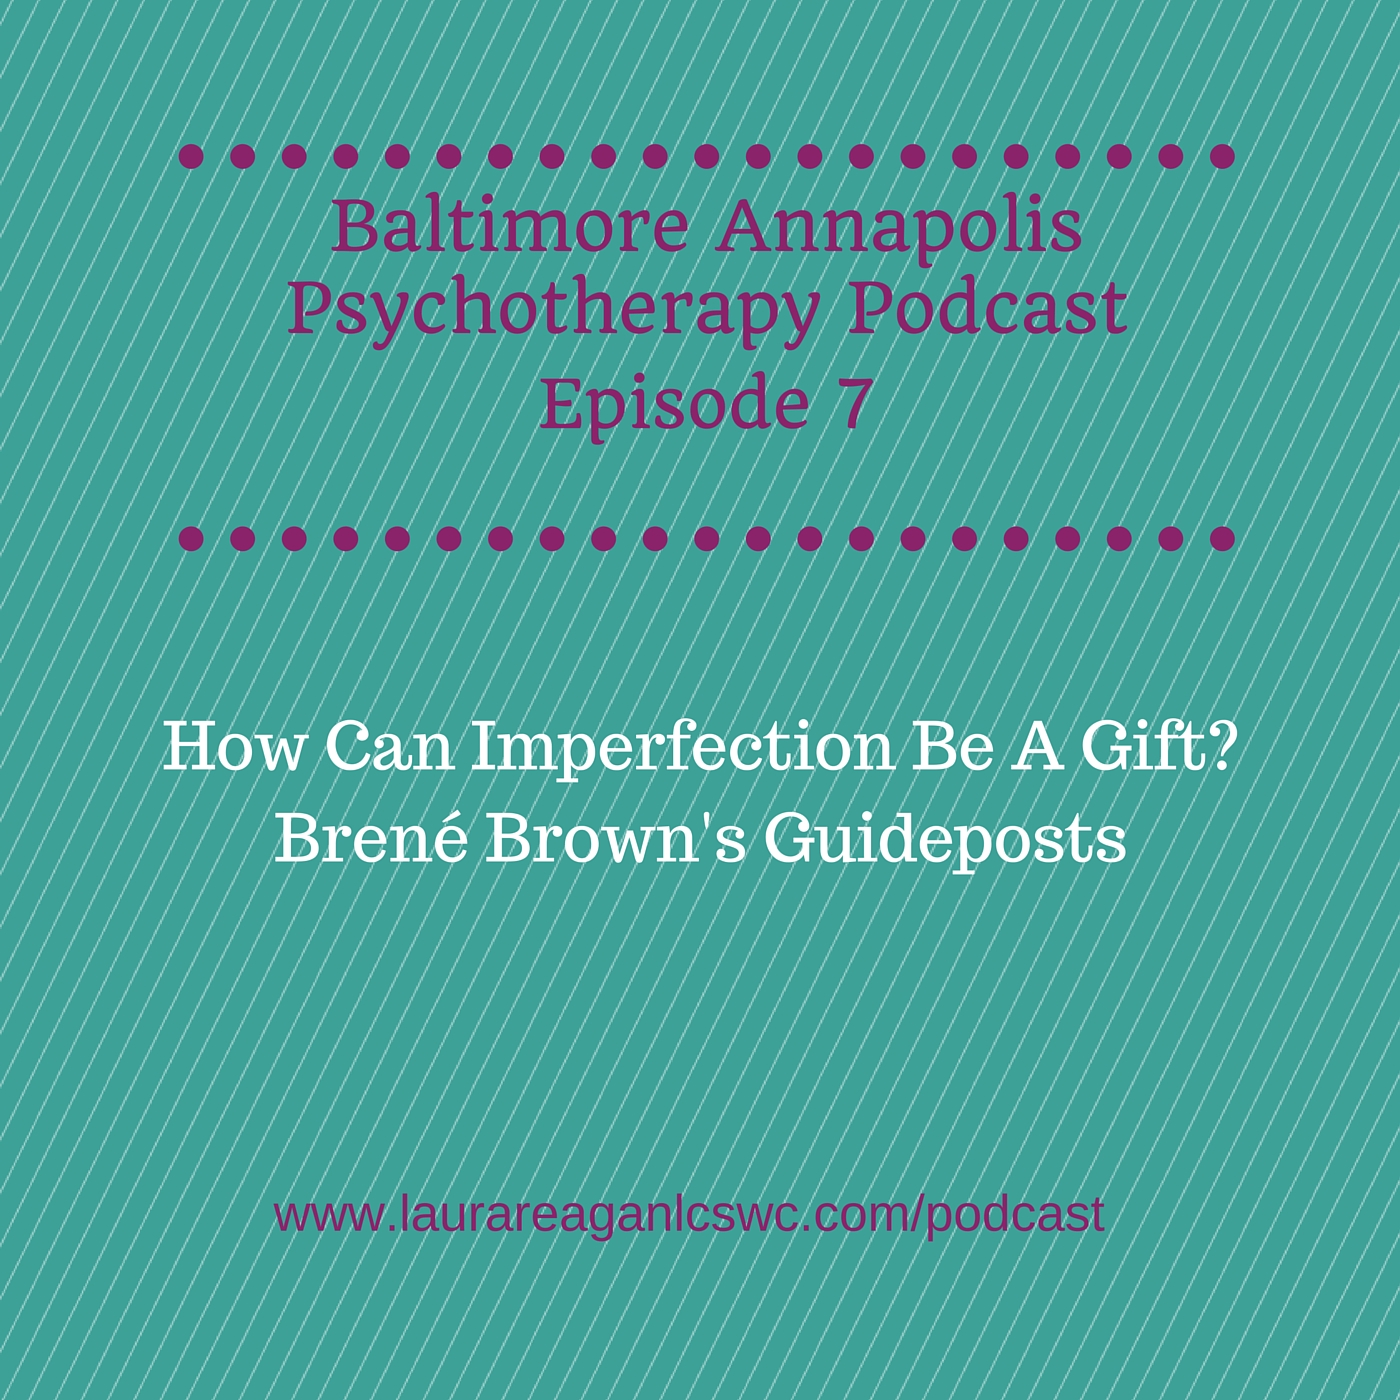 CLICK ON THE IMAGE TO LISTEN TO THE PODCAST EPISODE ON BRENE BROWN'S GUIDEPOSTS FOR WHOLEHEARTED LIVING!